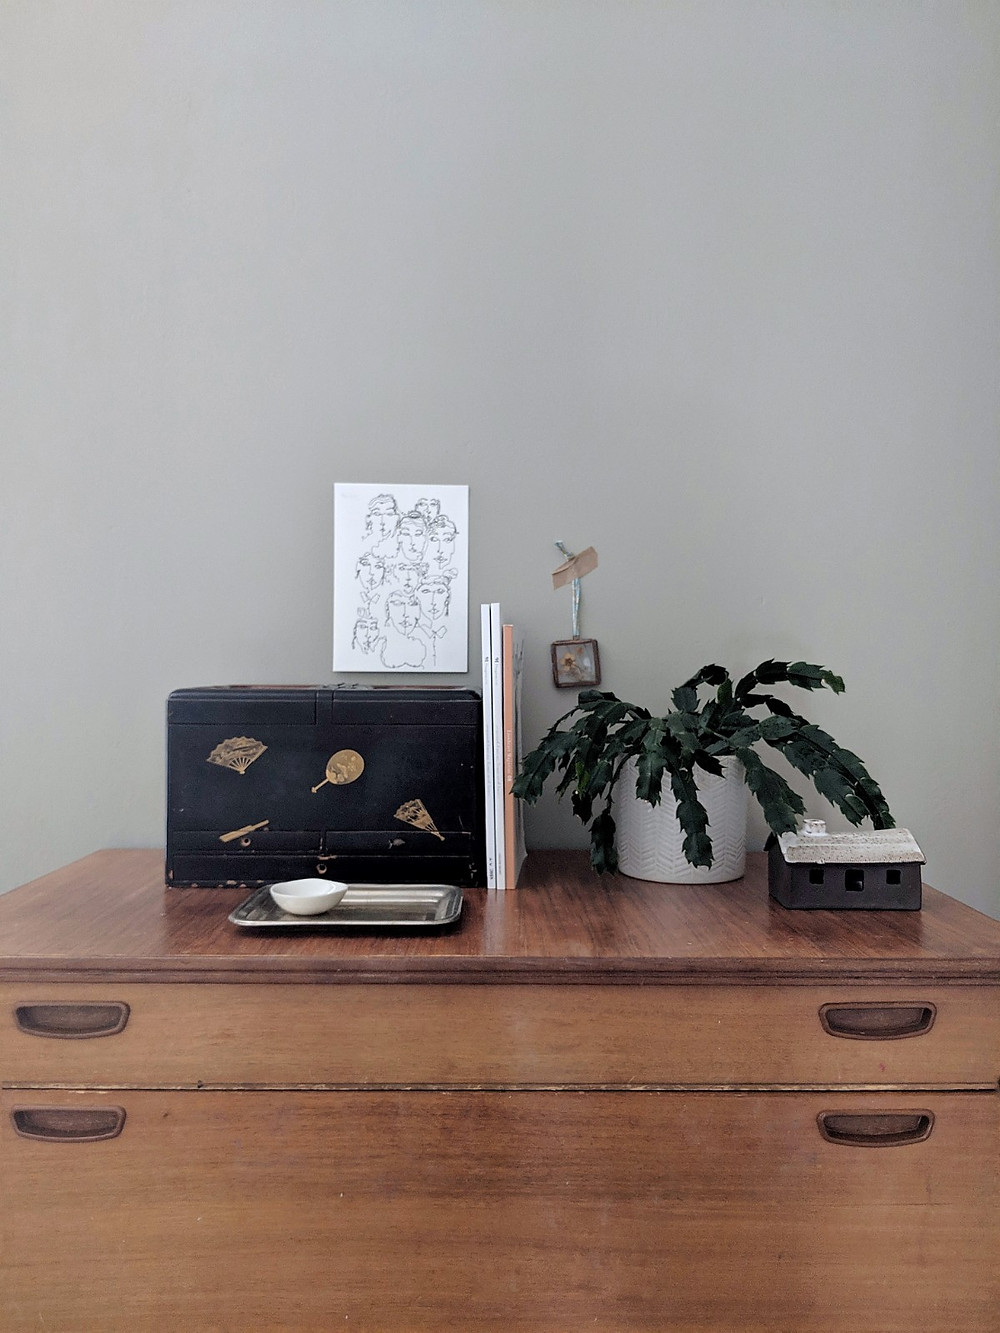 top of chest of drawers styling. Black box, plants, Katie Barclay print, Foxed ceramic bothy.